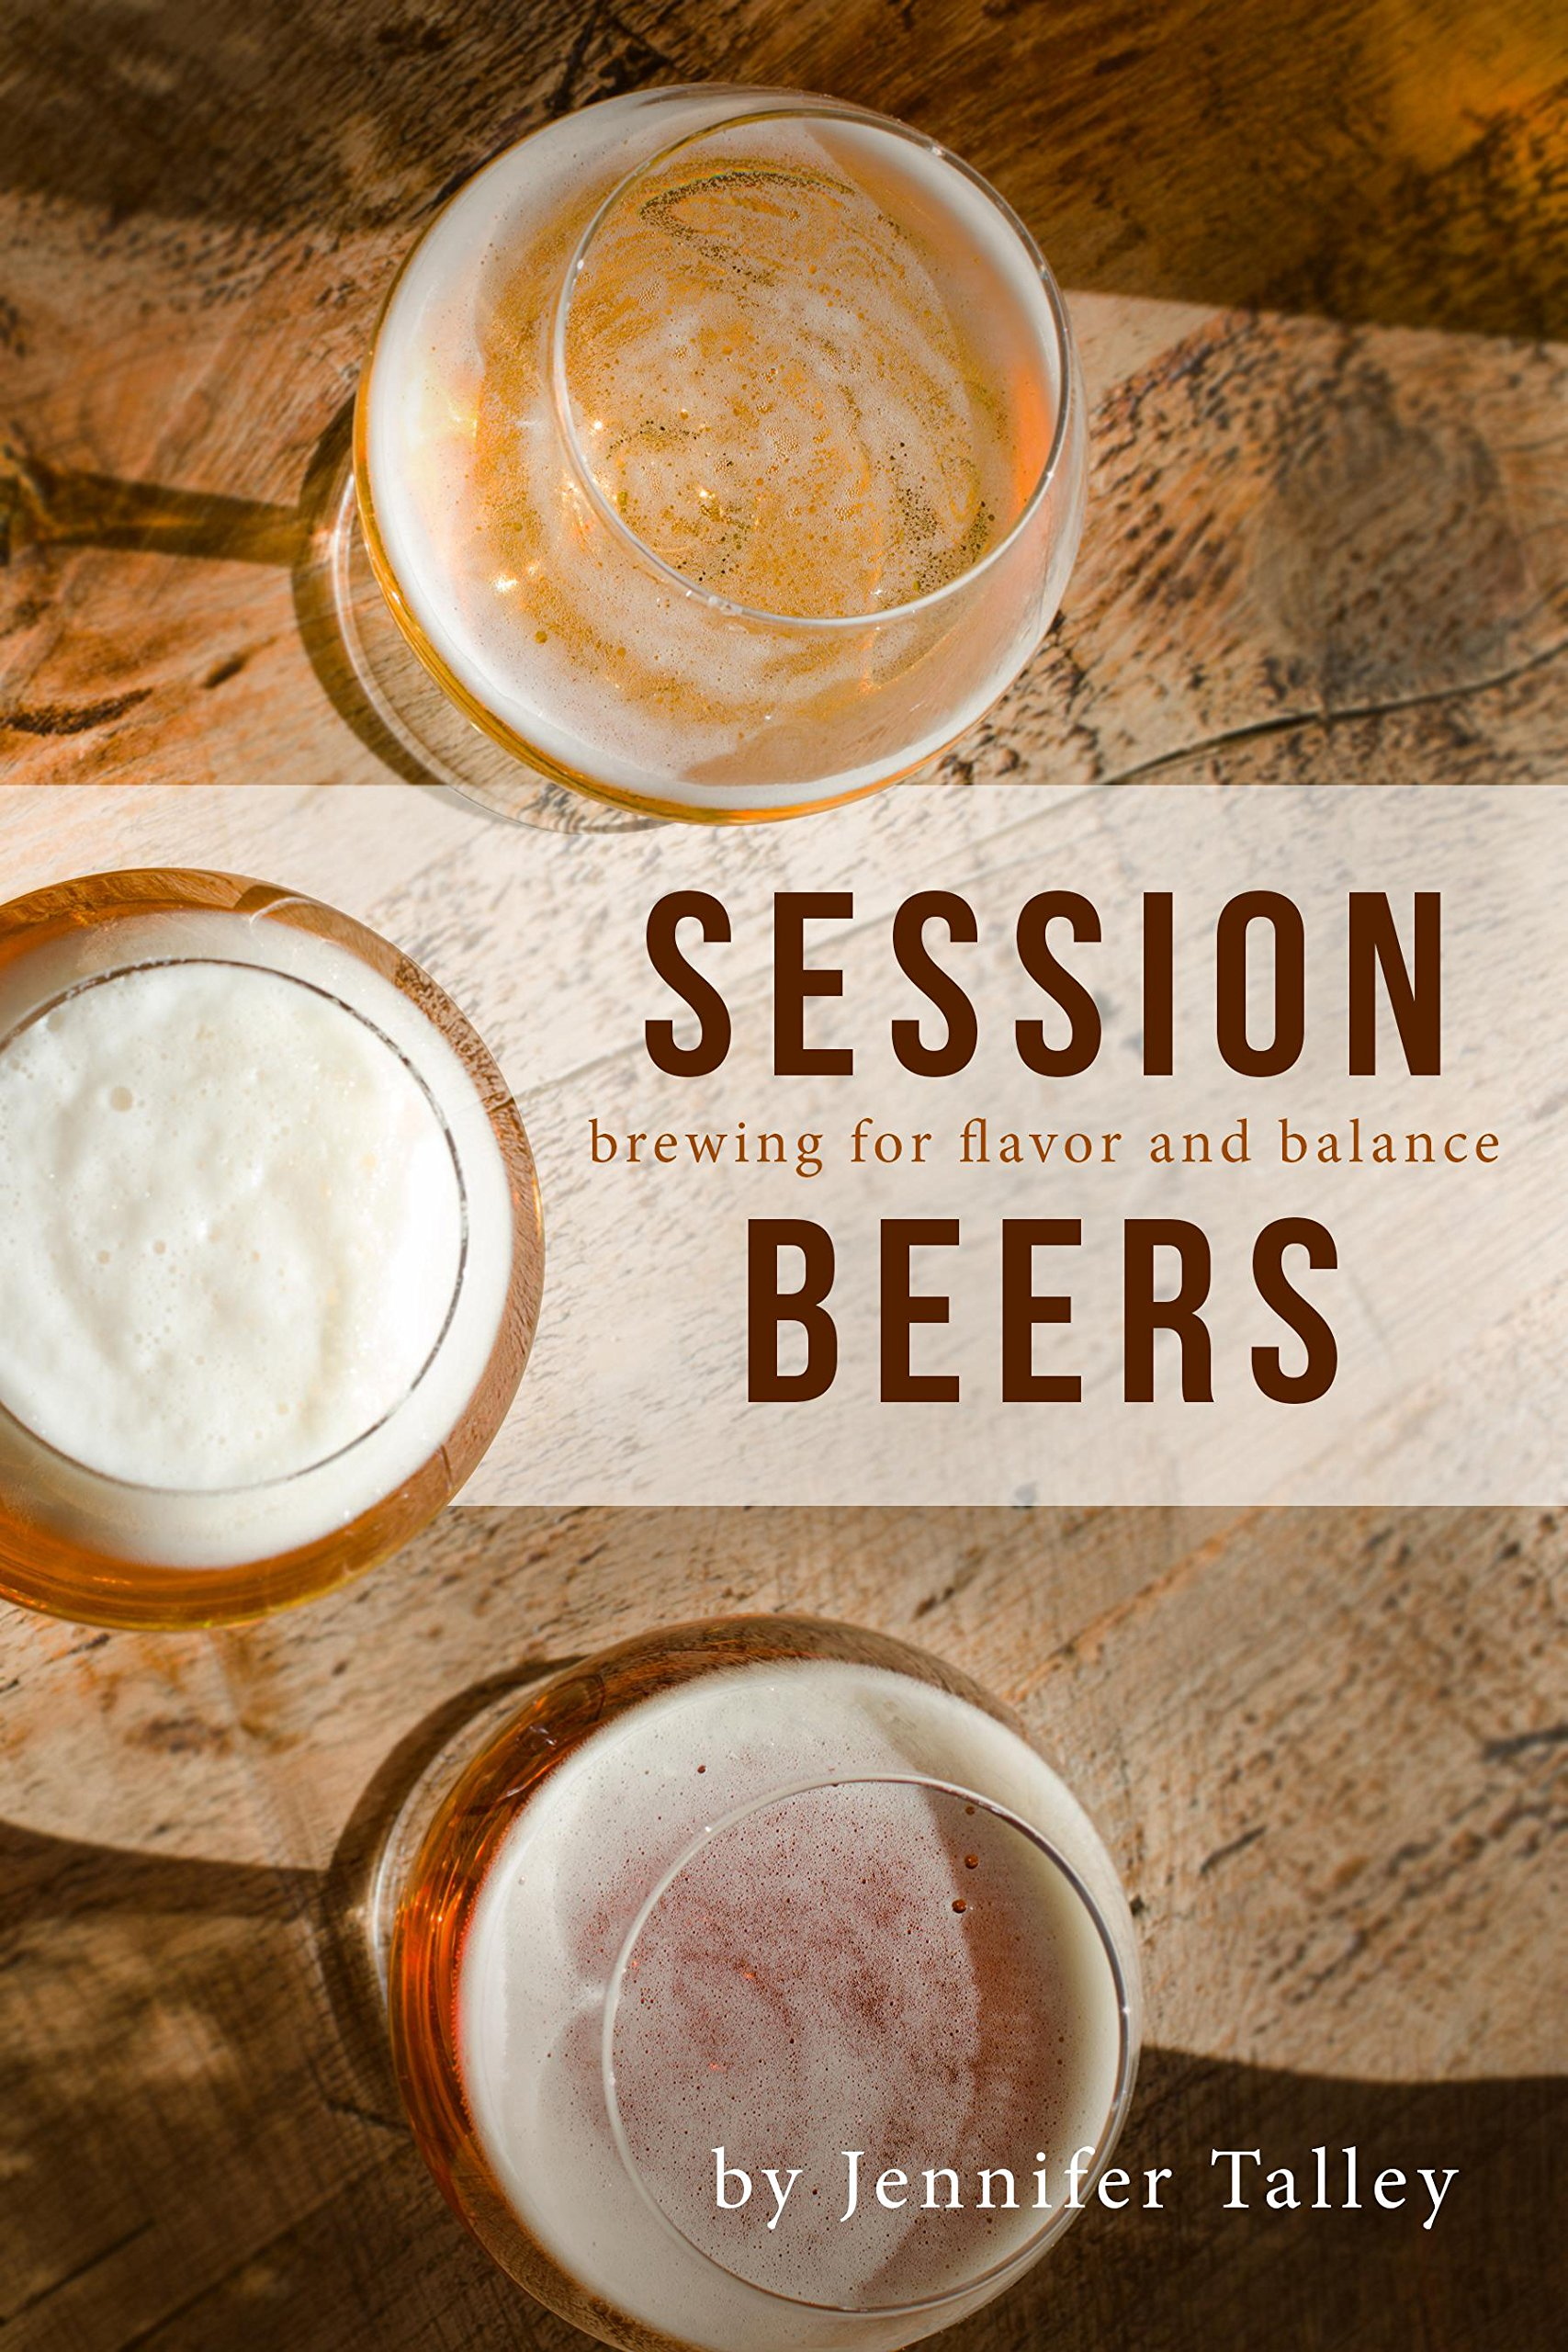 Session beers brewing for flavor and balance jennifer talley session beers brewing for flavor and balance jennifer talley 9781938469411 amazon books fandeluxe Images